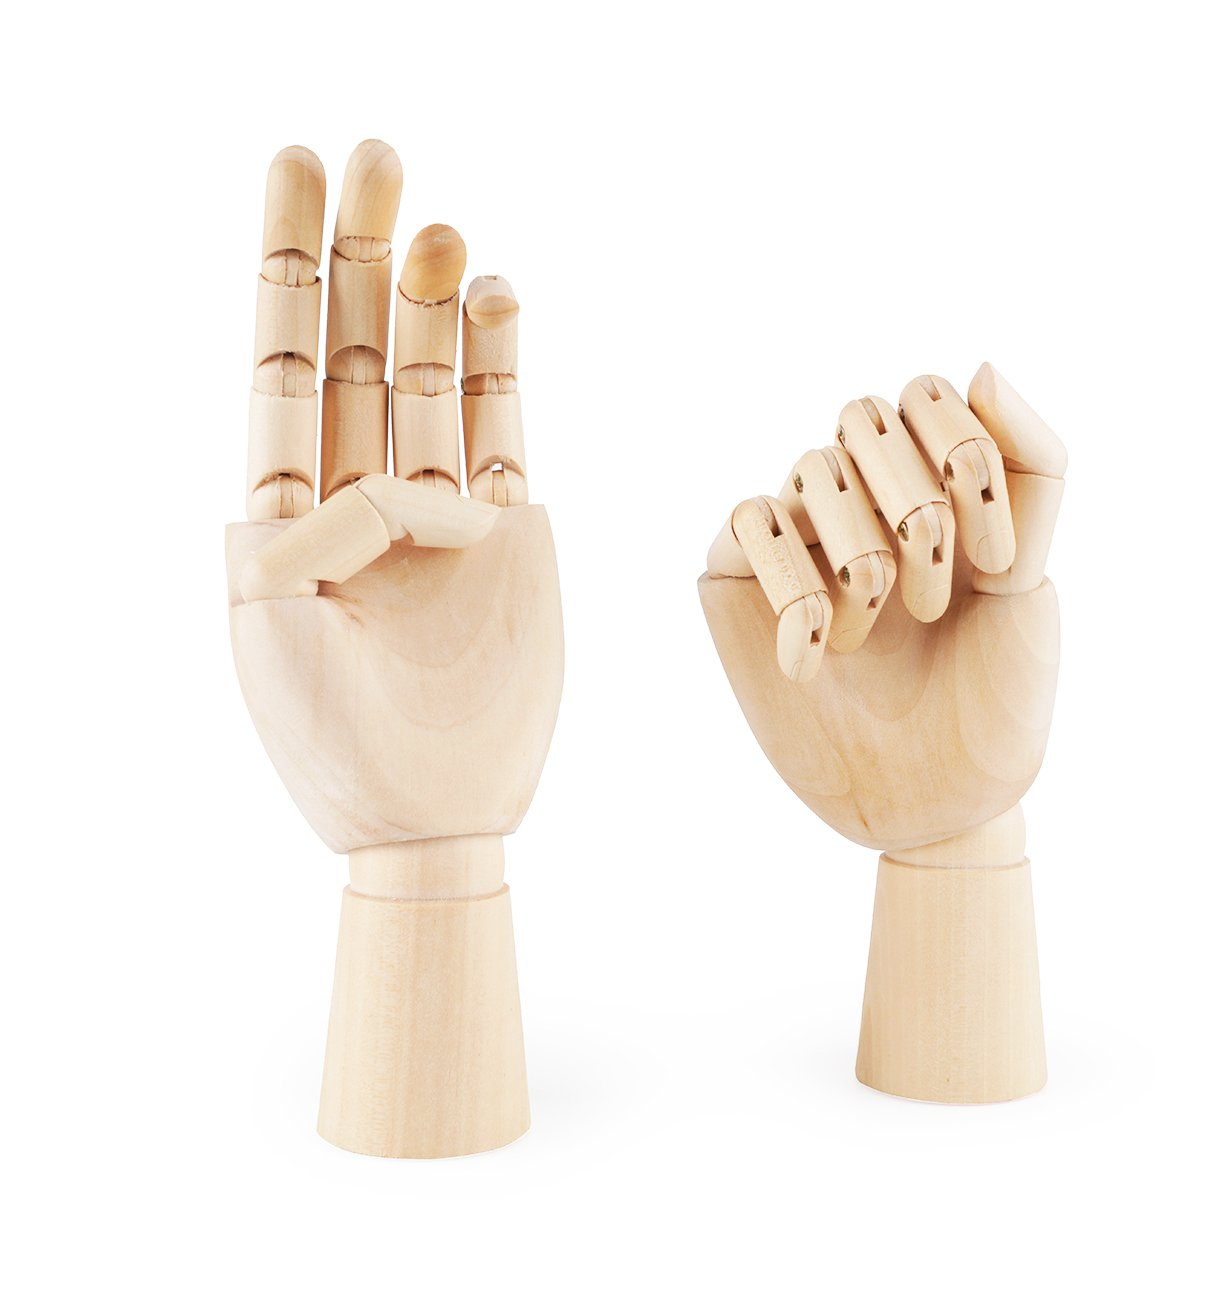 Fashionclubs 7'' Wooden Sectioned Opposable Articulated Left/Right Hand Figure Manikin Hand Model for Drawing, Sketching, Painting (Left+Right Hand)